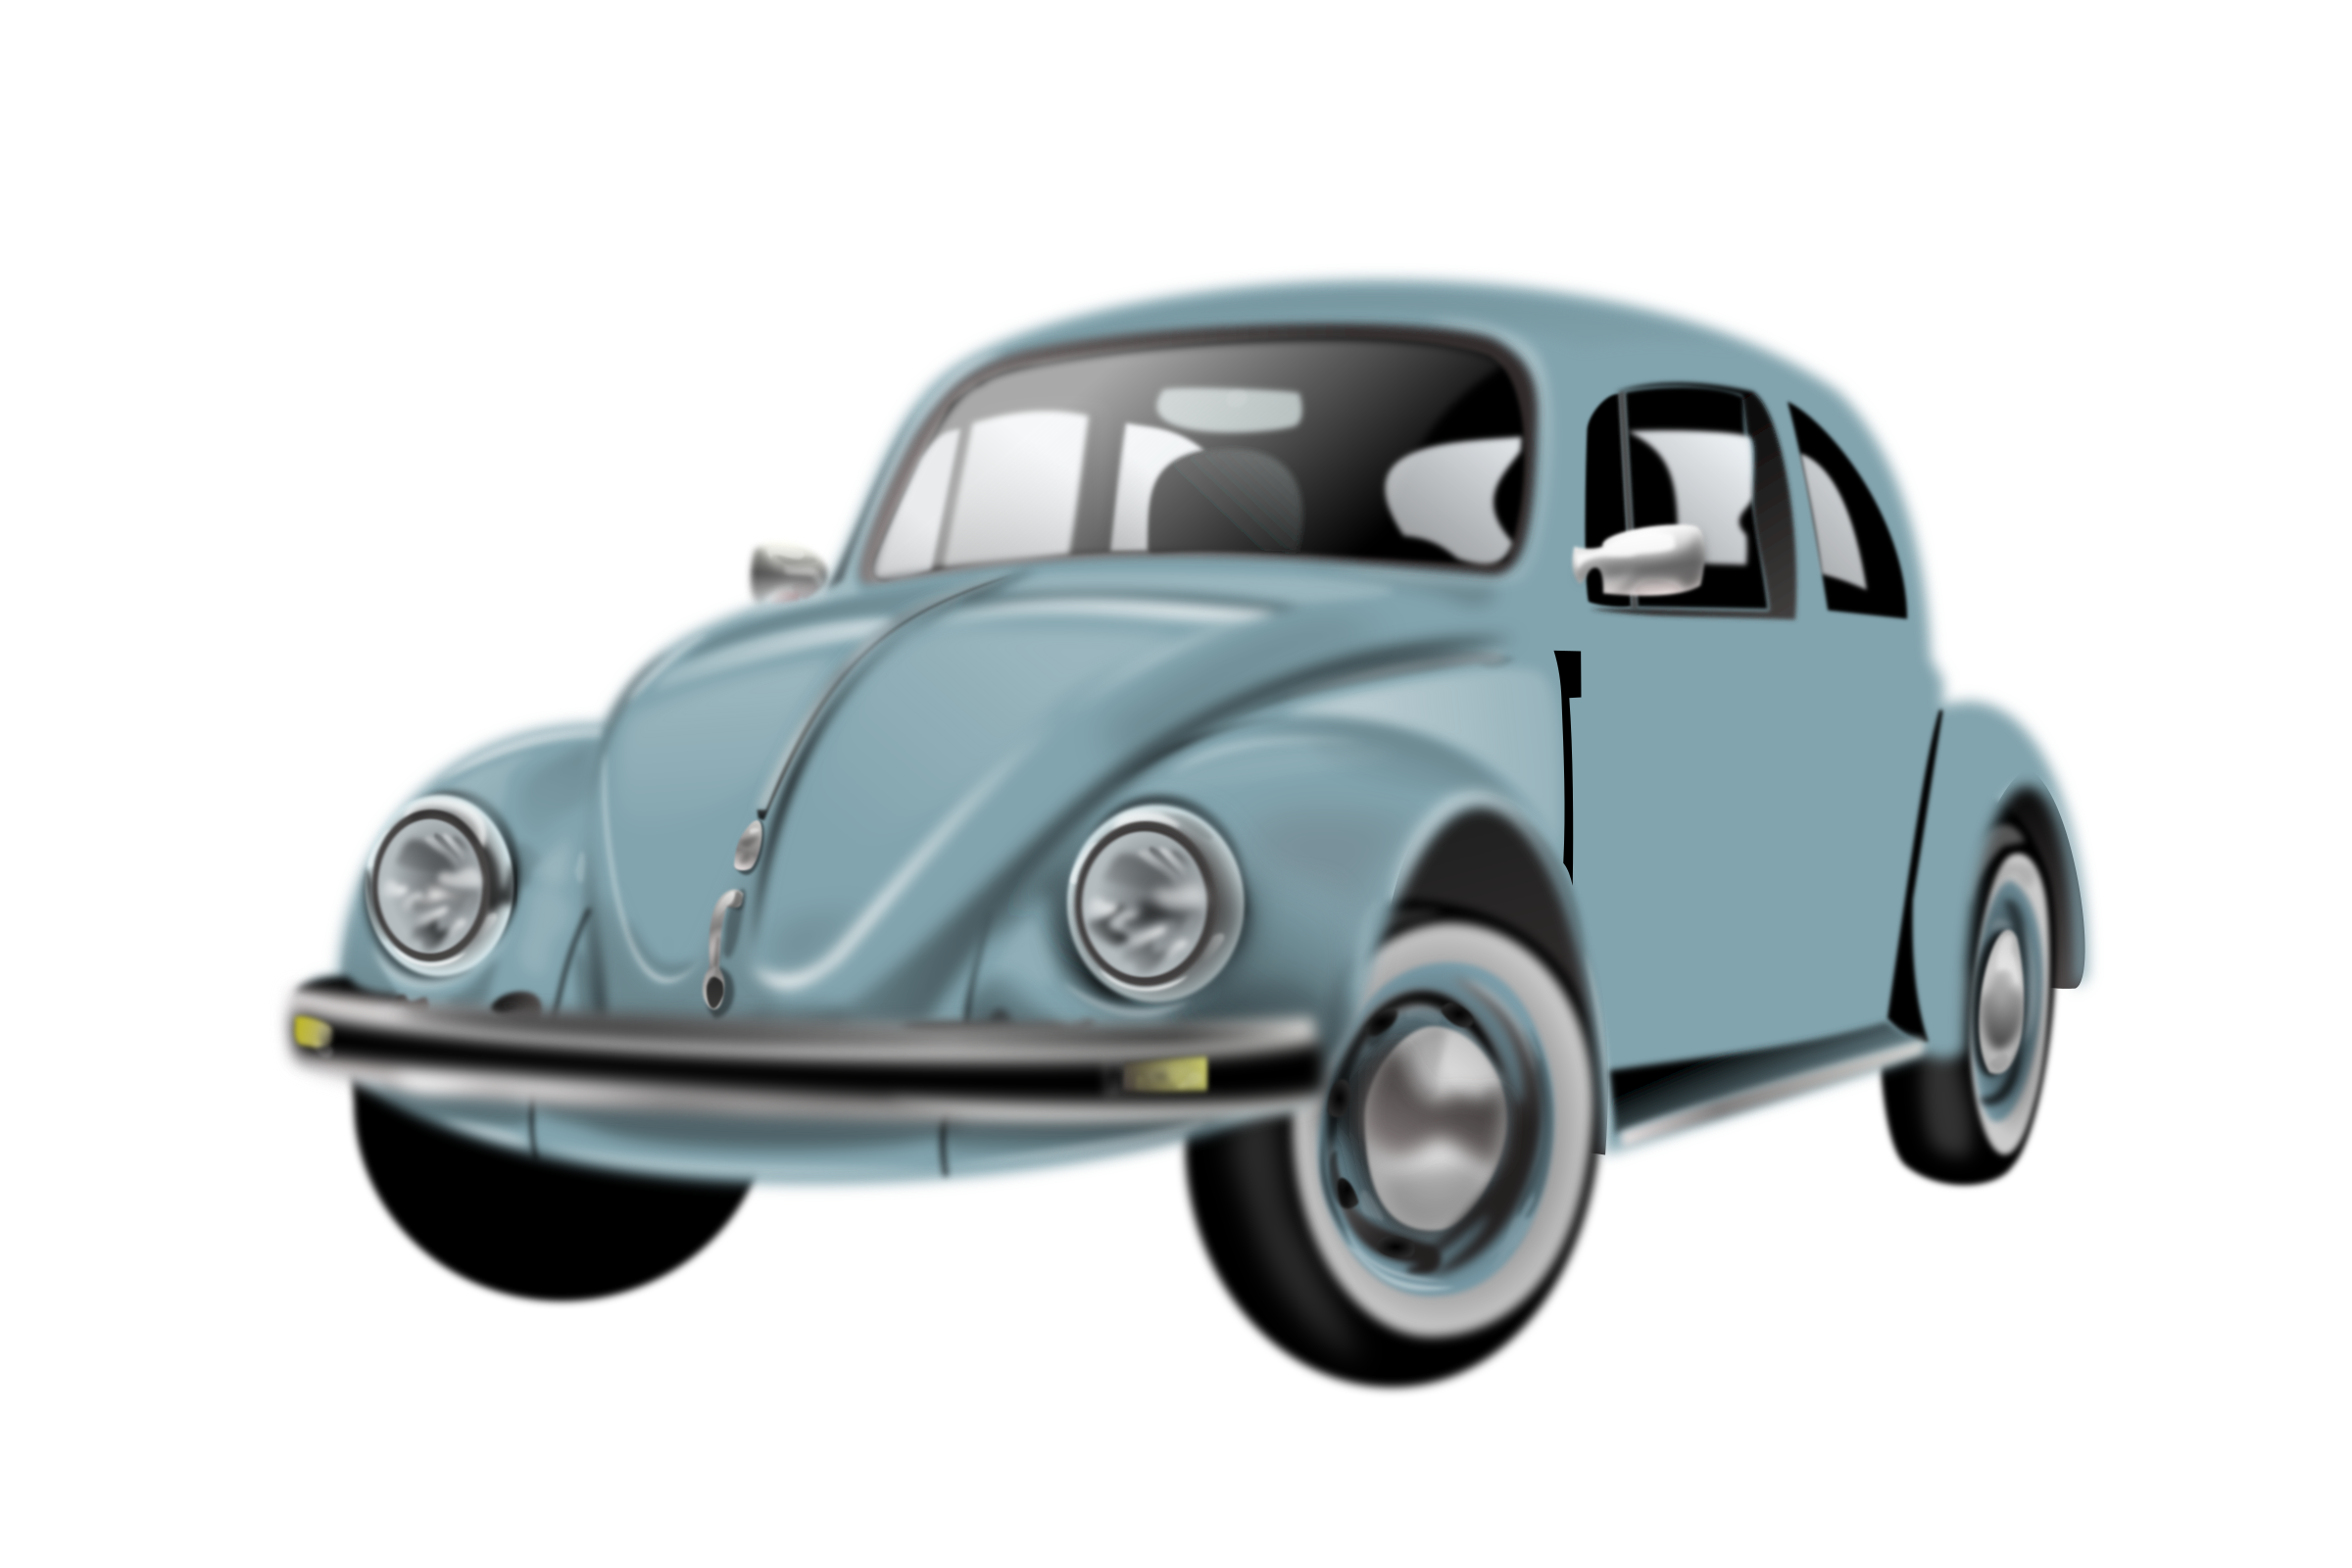 Car crash clipart transparent graphic royalty free library Clipart - Uncomplete realistic car graphic royalty free library